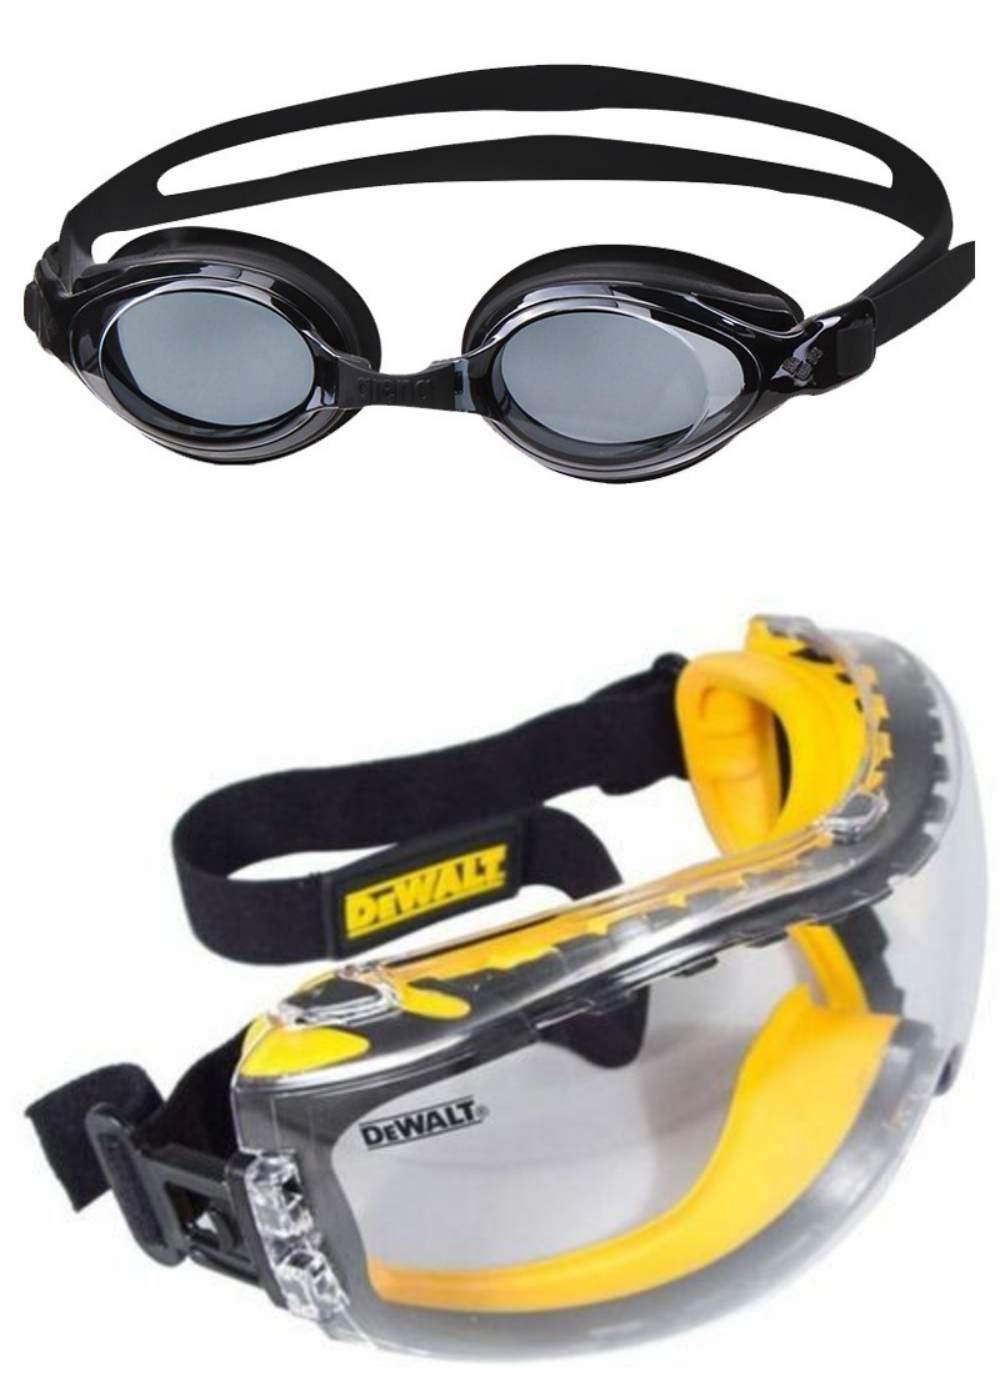 PPE glasses for Coronavirus protection